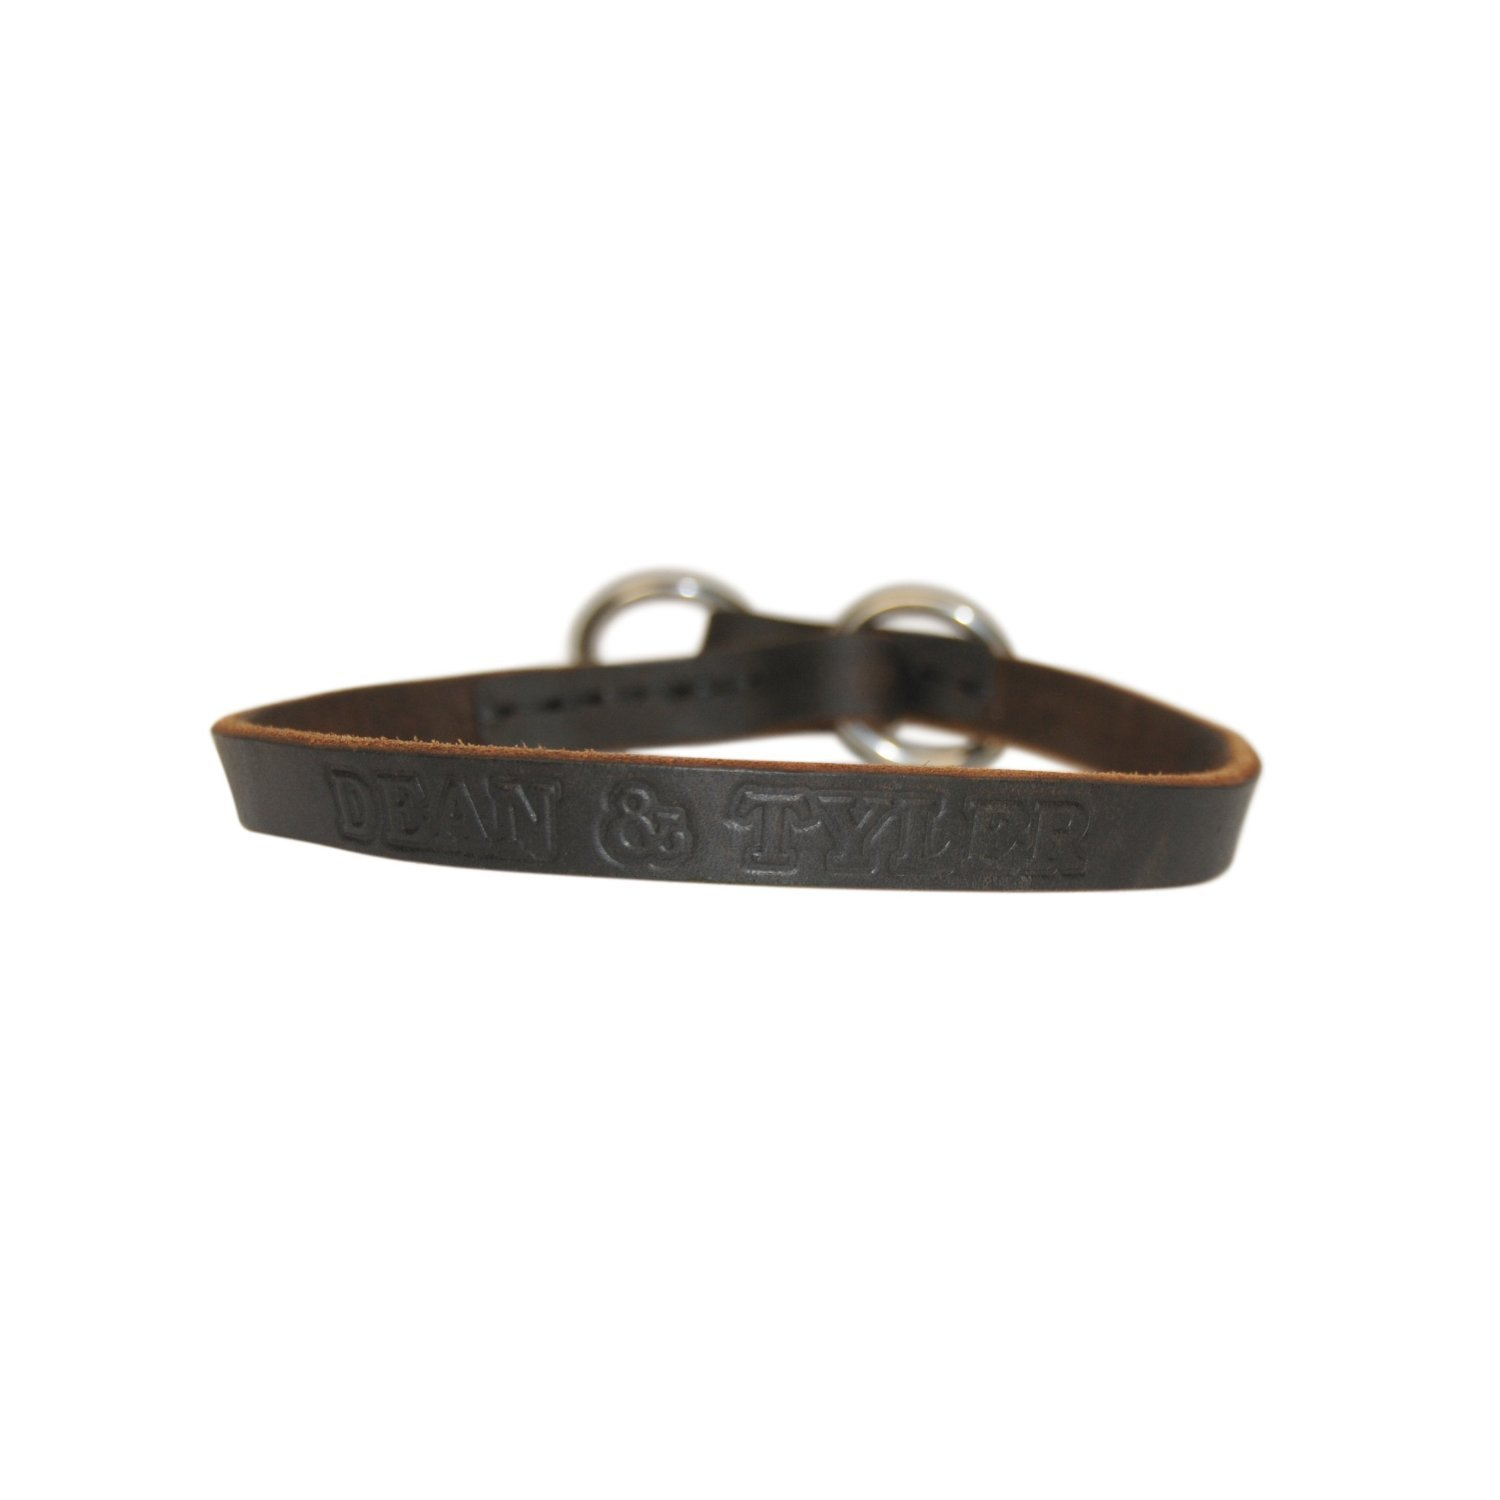 Dean and Tyler TRANQUILITY , Leather Dog Choke Collar with Stainless Steel Hardware Brown Size 36-Inch by 3 4-Inch Fits Neck 34-Inch to 36-Inch